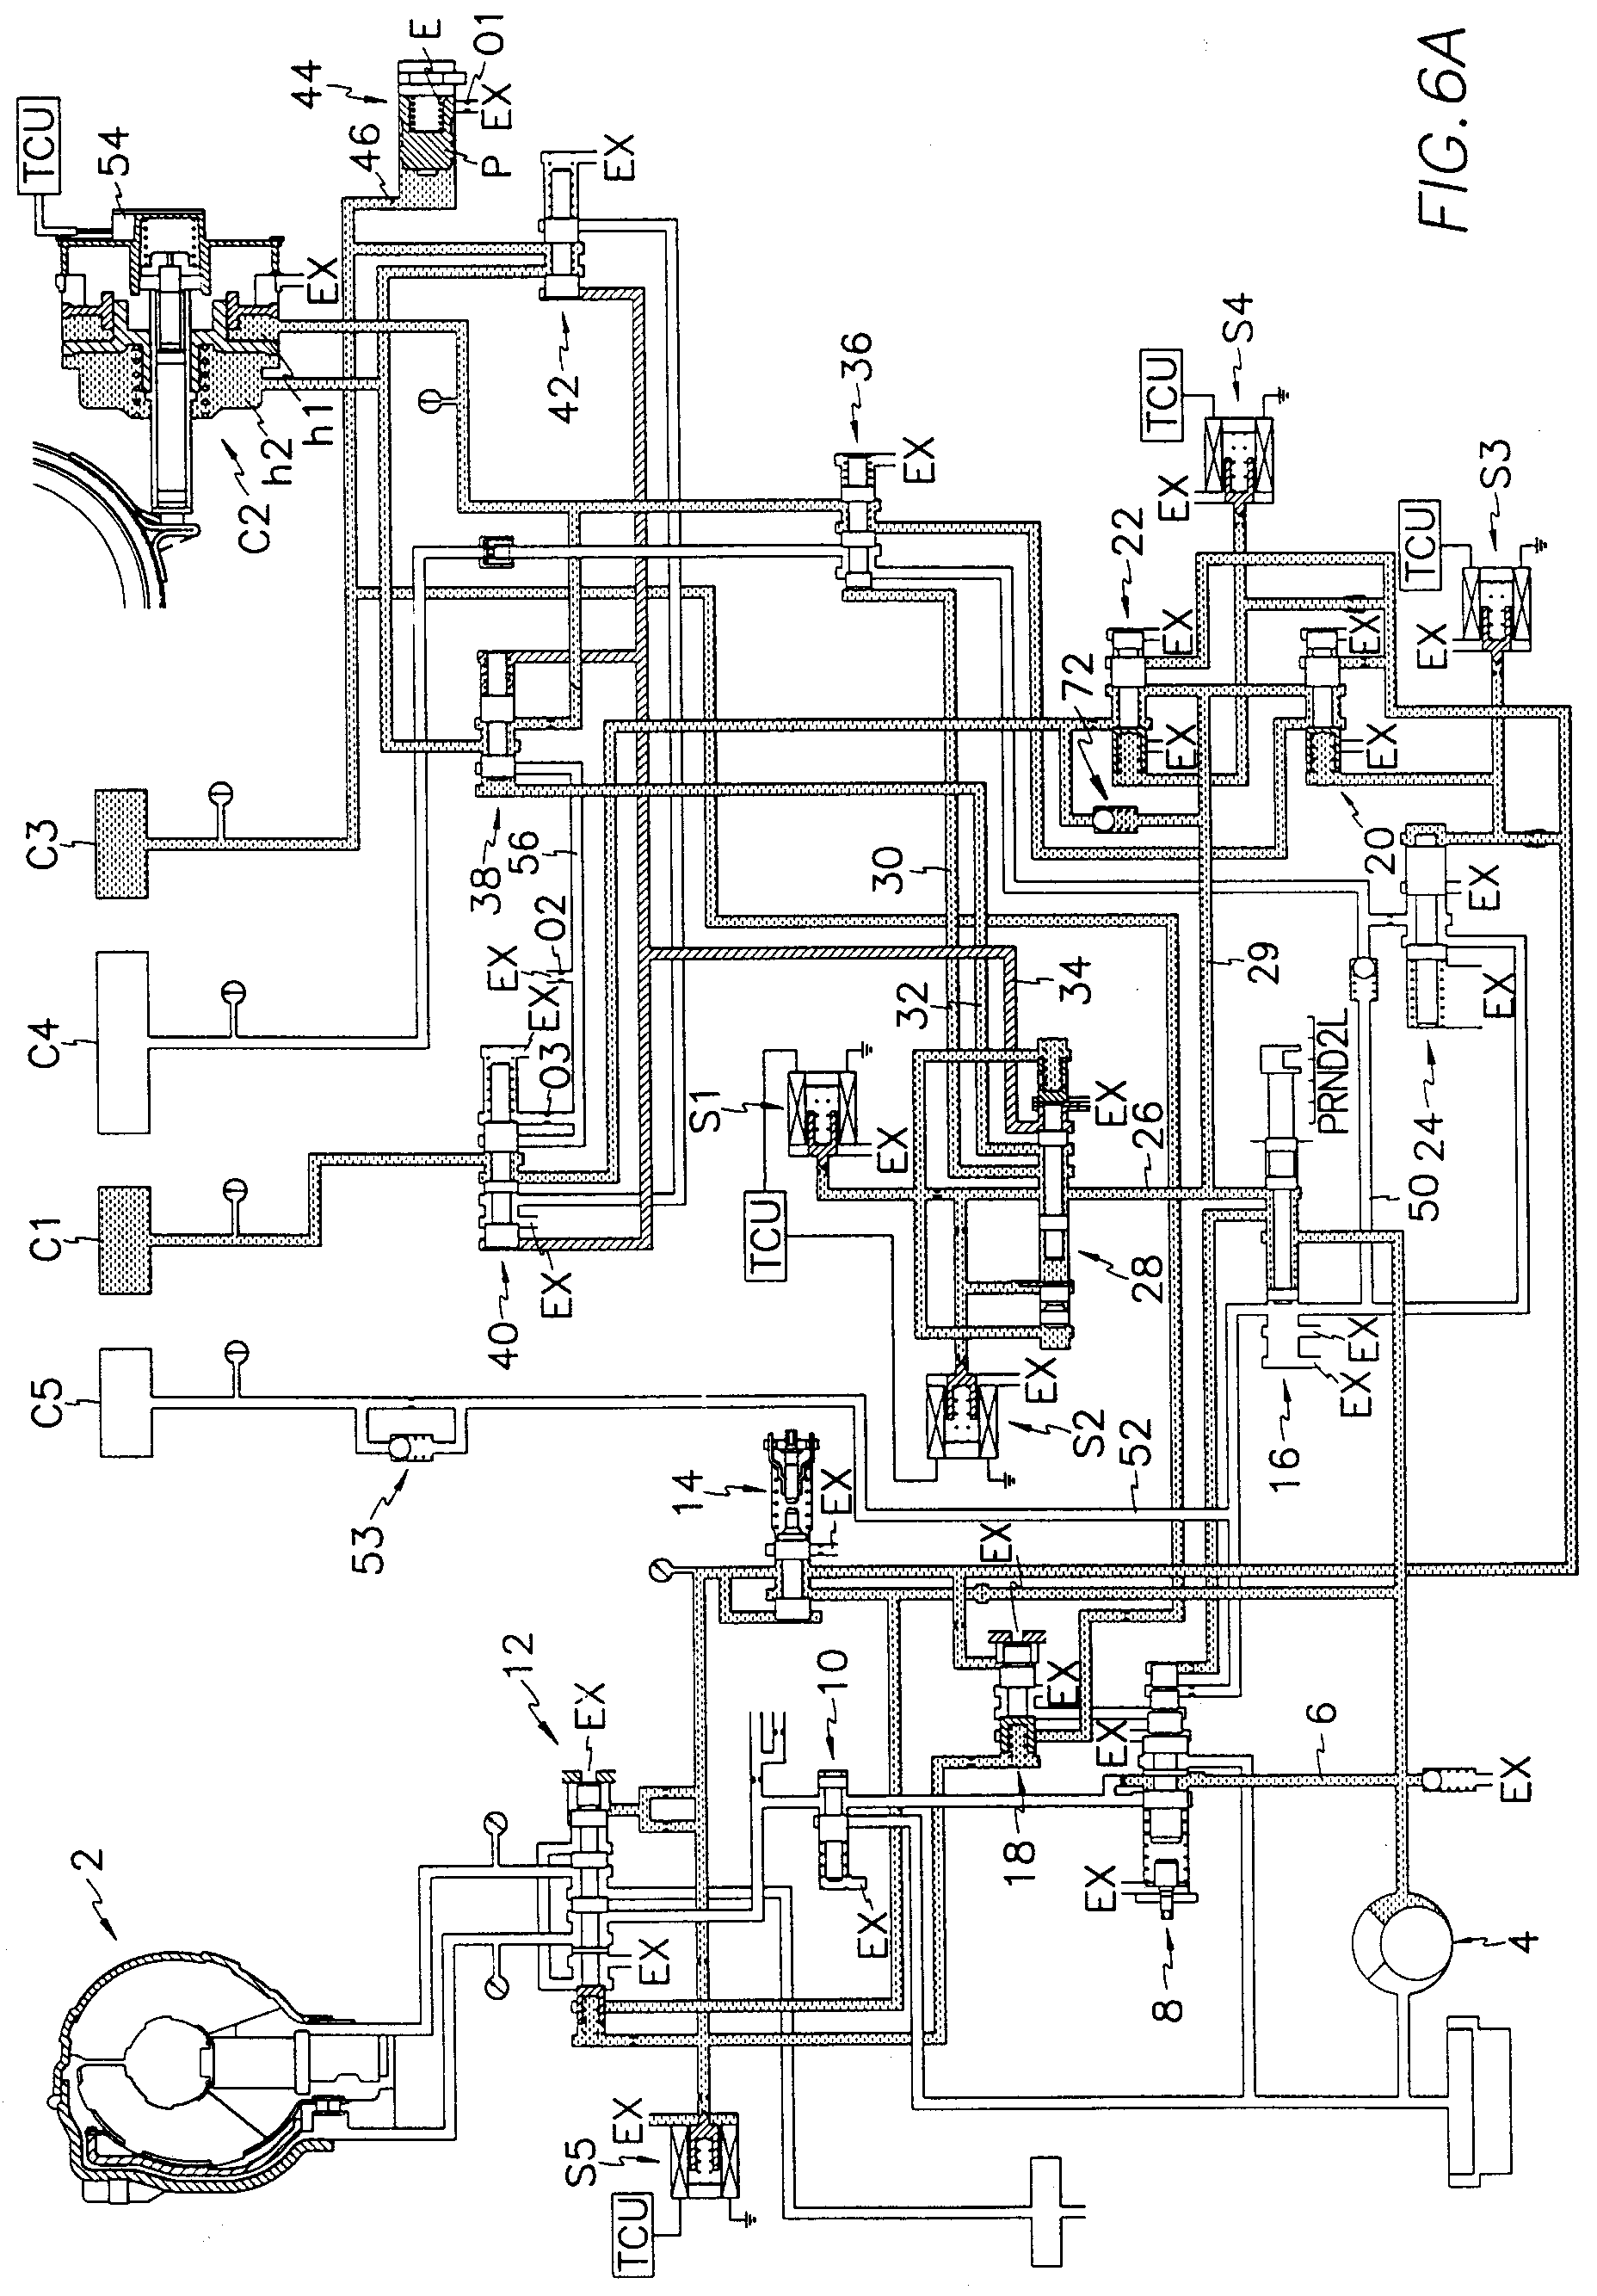 1066 International Tractor Wiring Diagram Westwood Mower Wiring Diagram Google Search Fig 6a